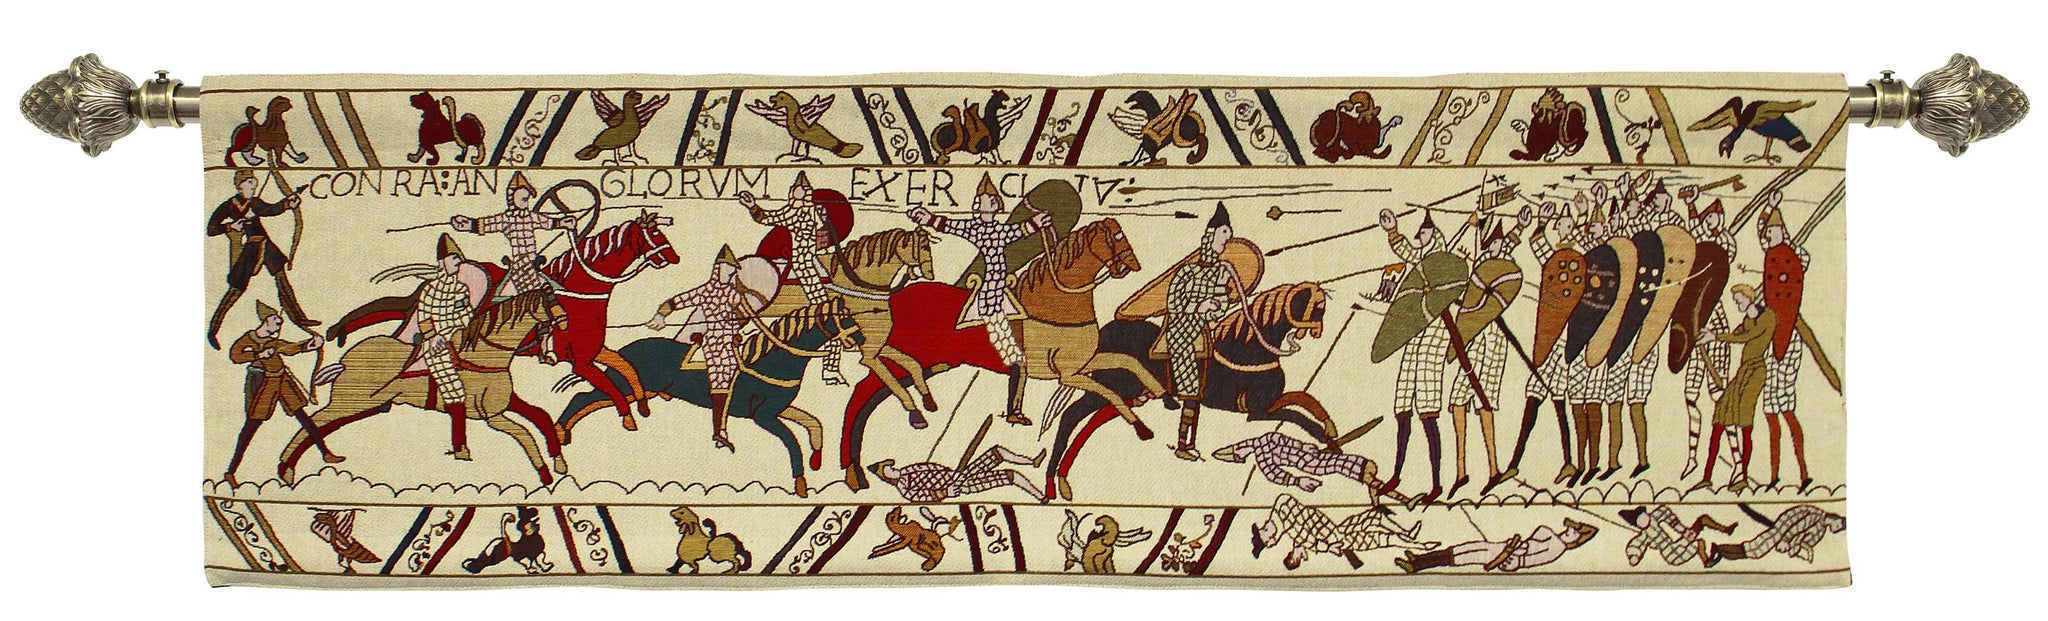 Bayeux Tapestry Signare Good Quality Tapestry